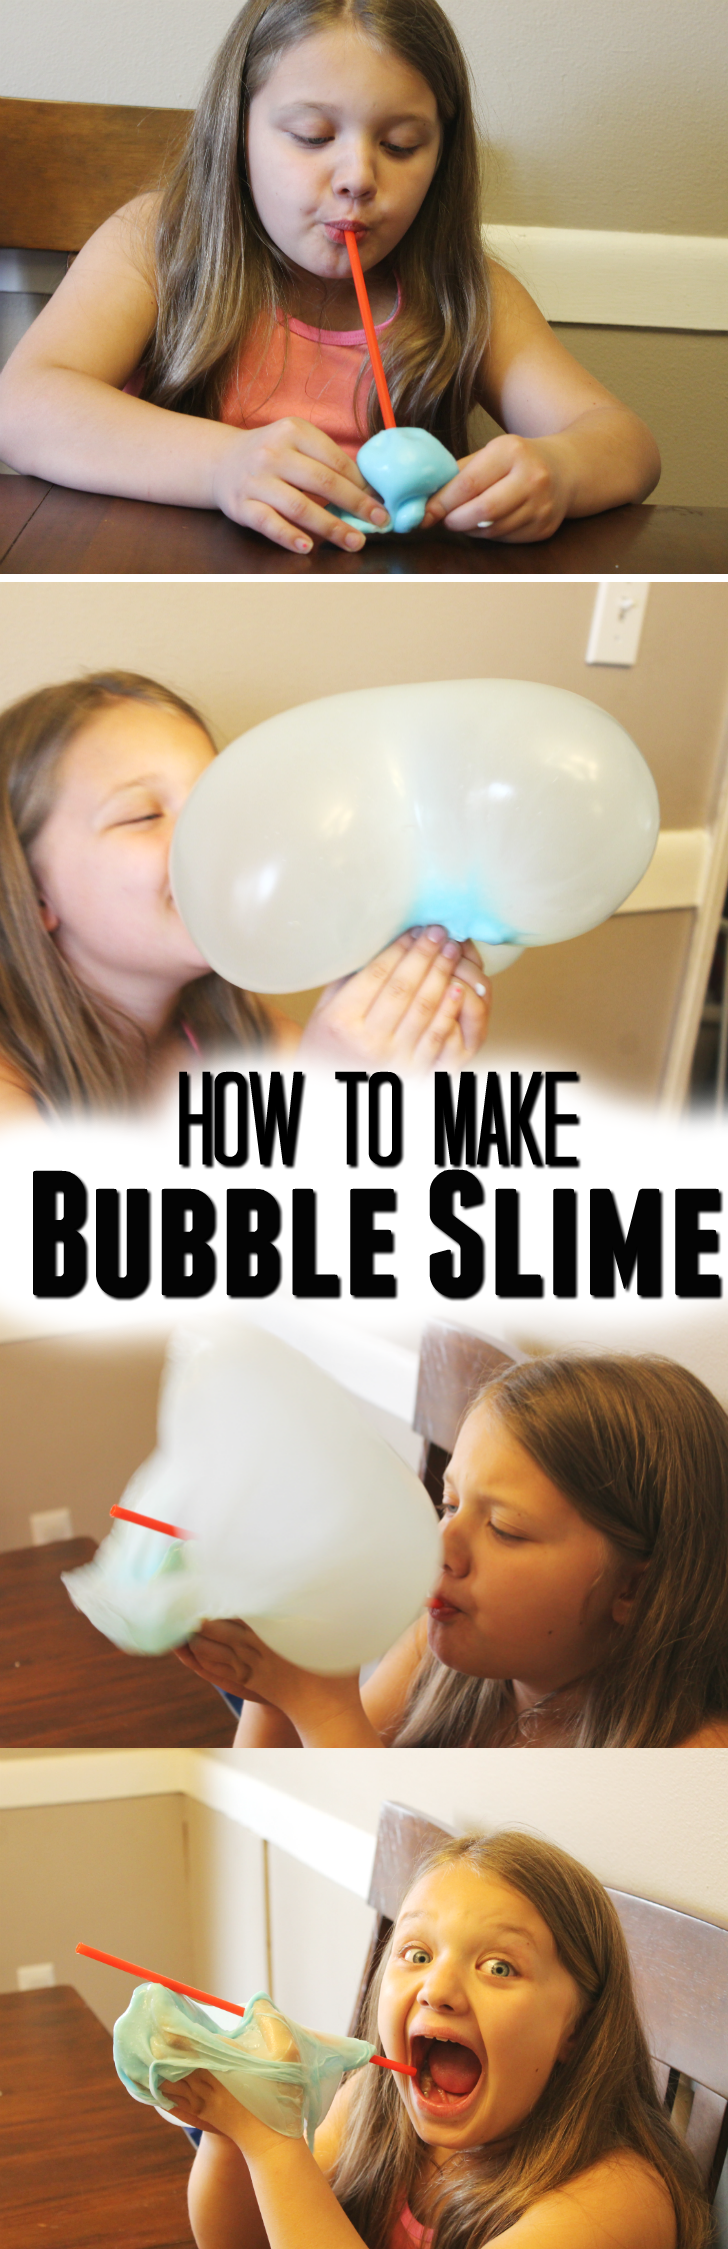 Blowing Bubbles with Bubble Slime Recipe